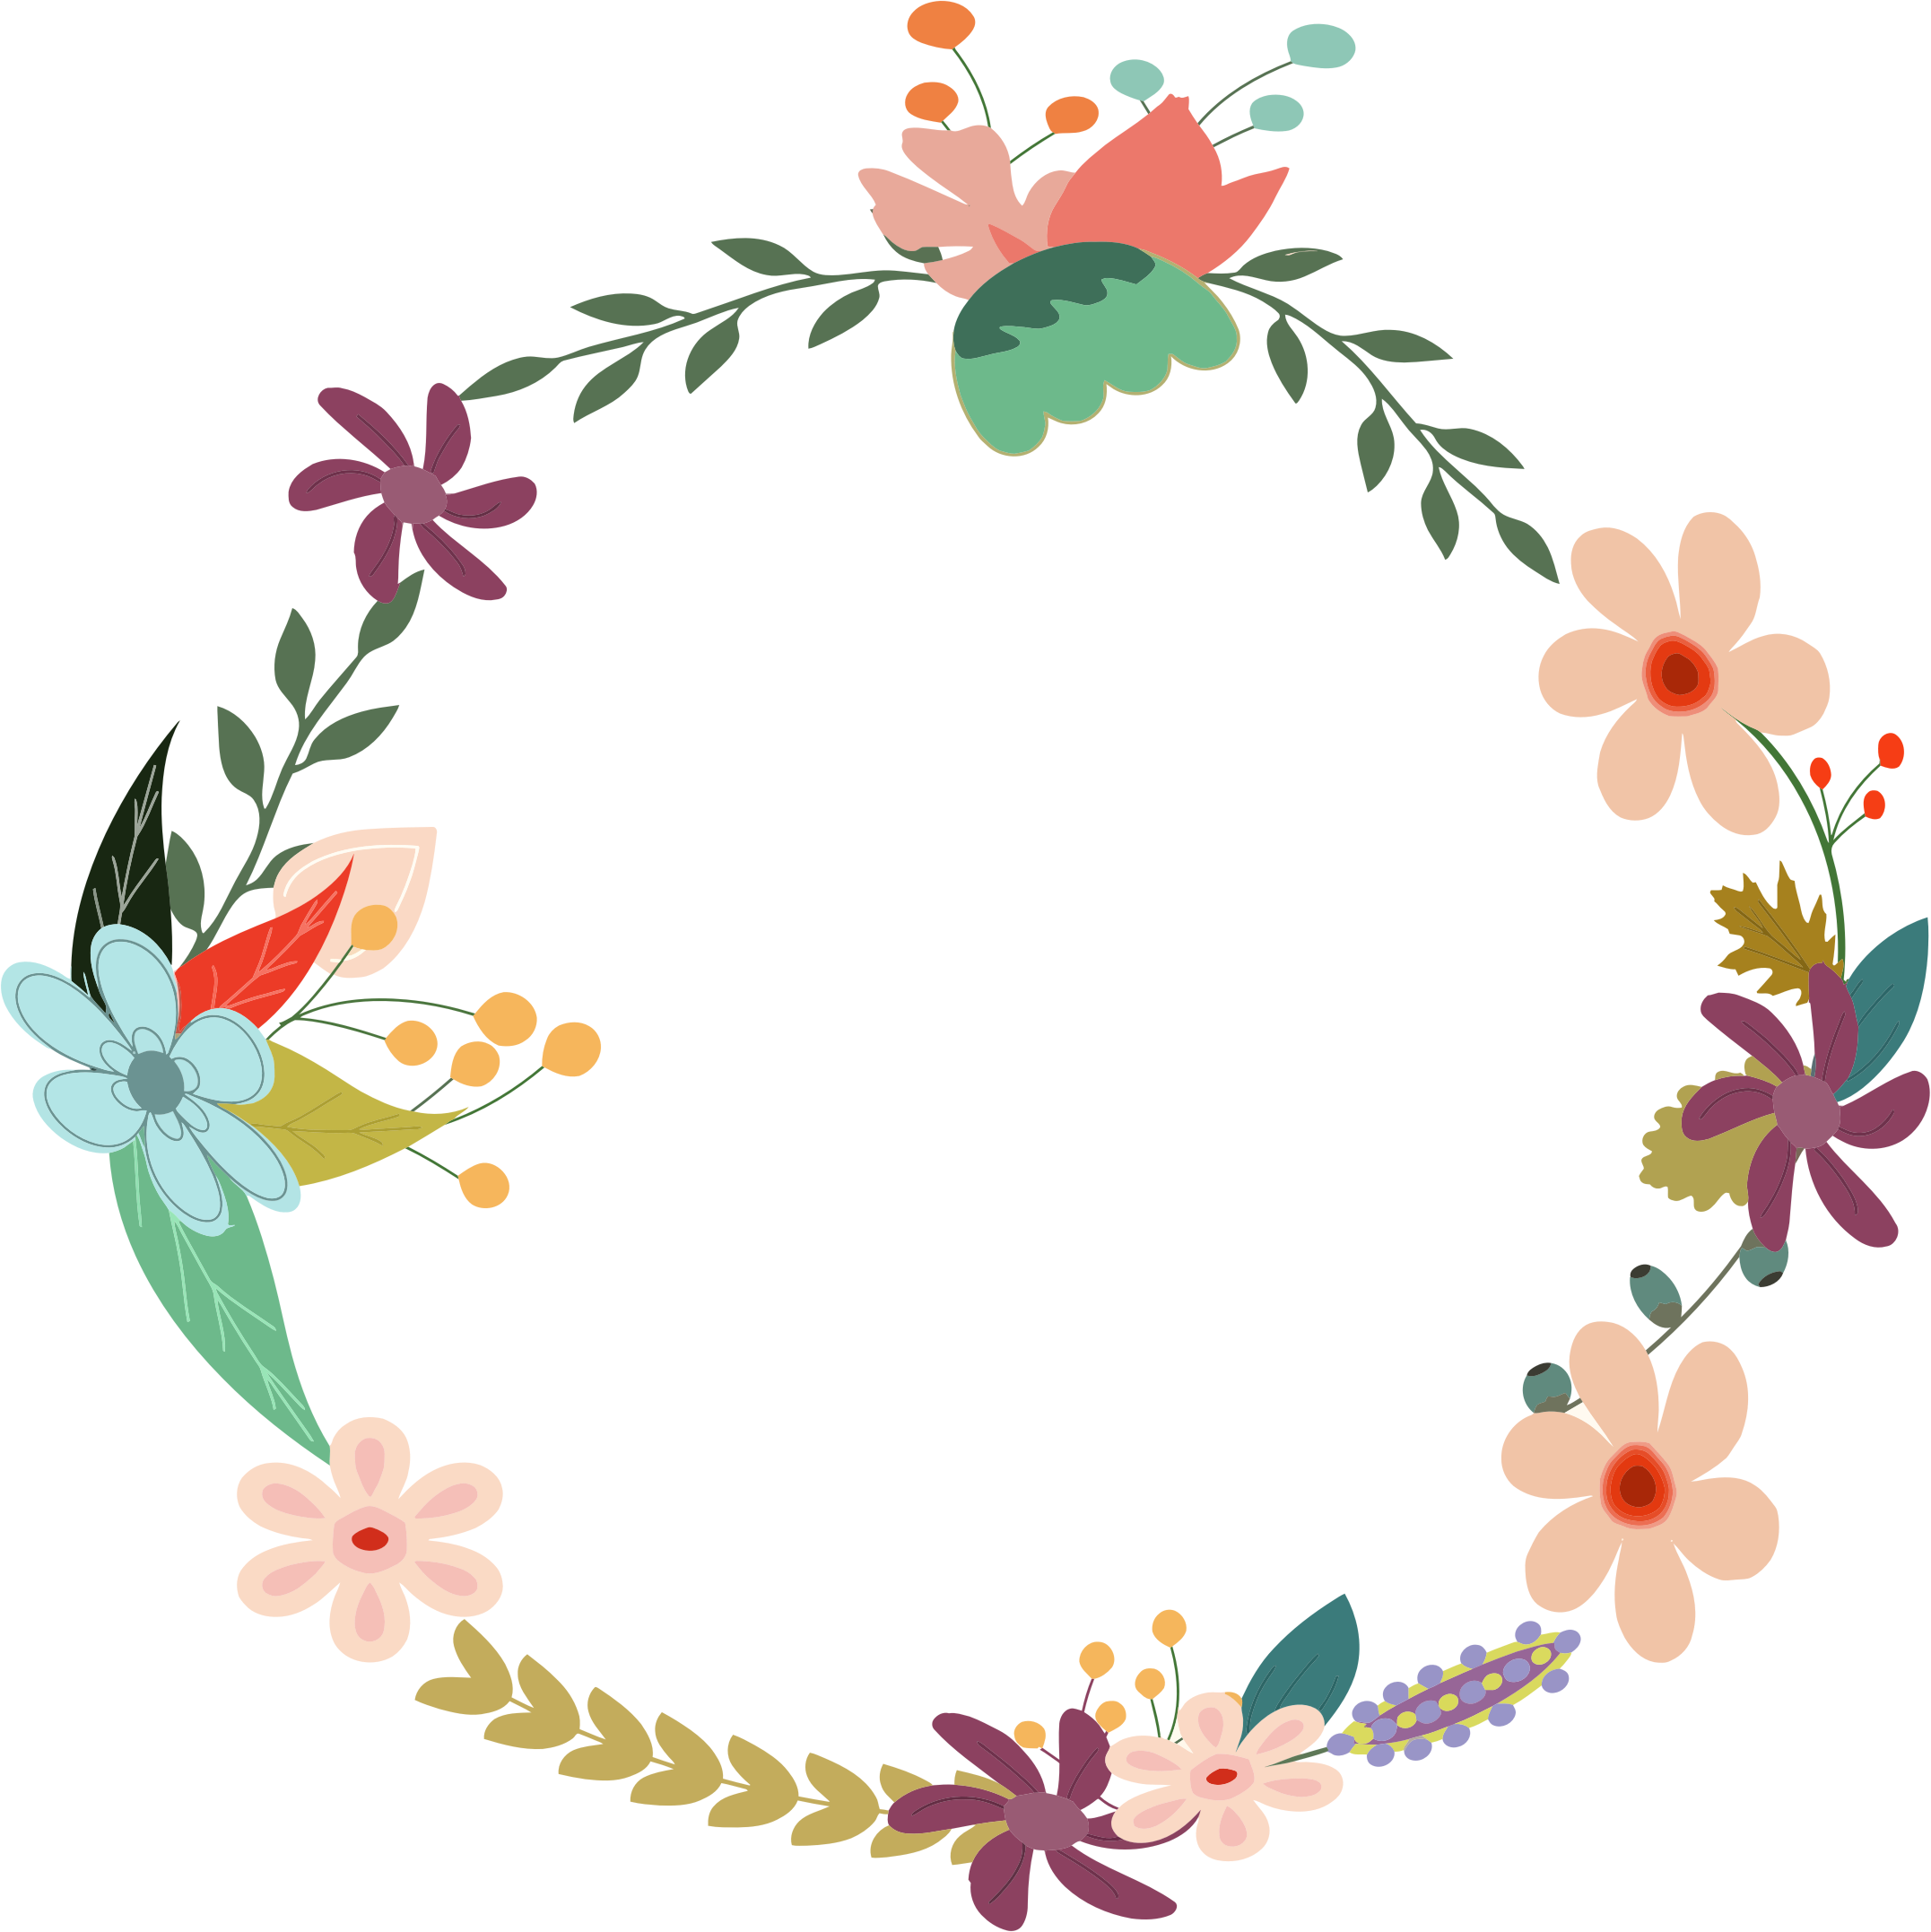 Retro flower clipart jpg freeuse download Vintage Floral Wreath by @GDJ, From PDP, with love., on @openclipart ... jpg freeuse download